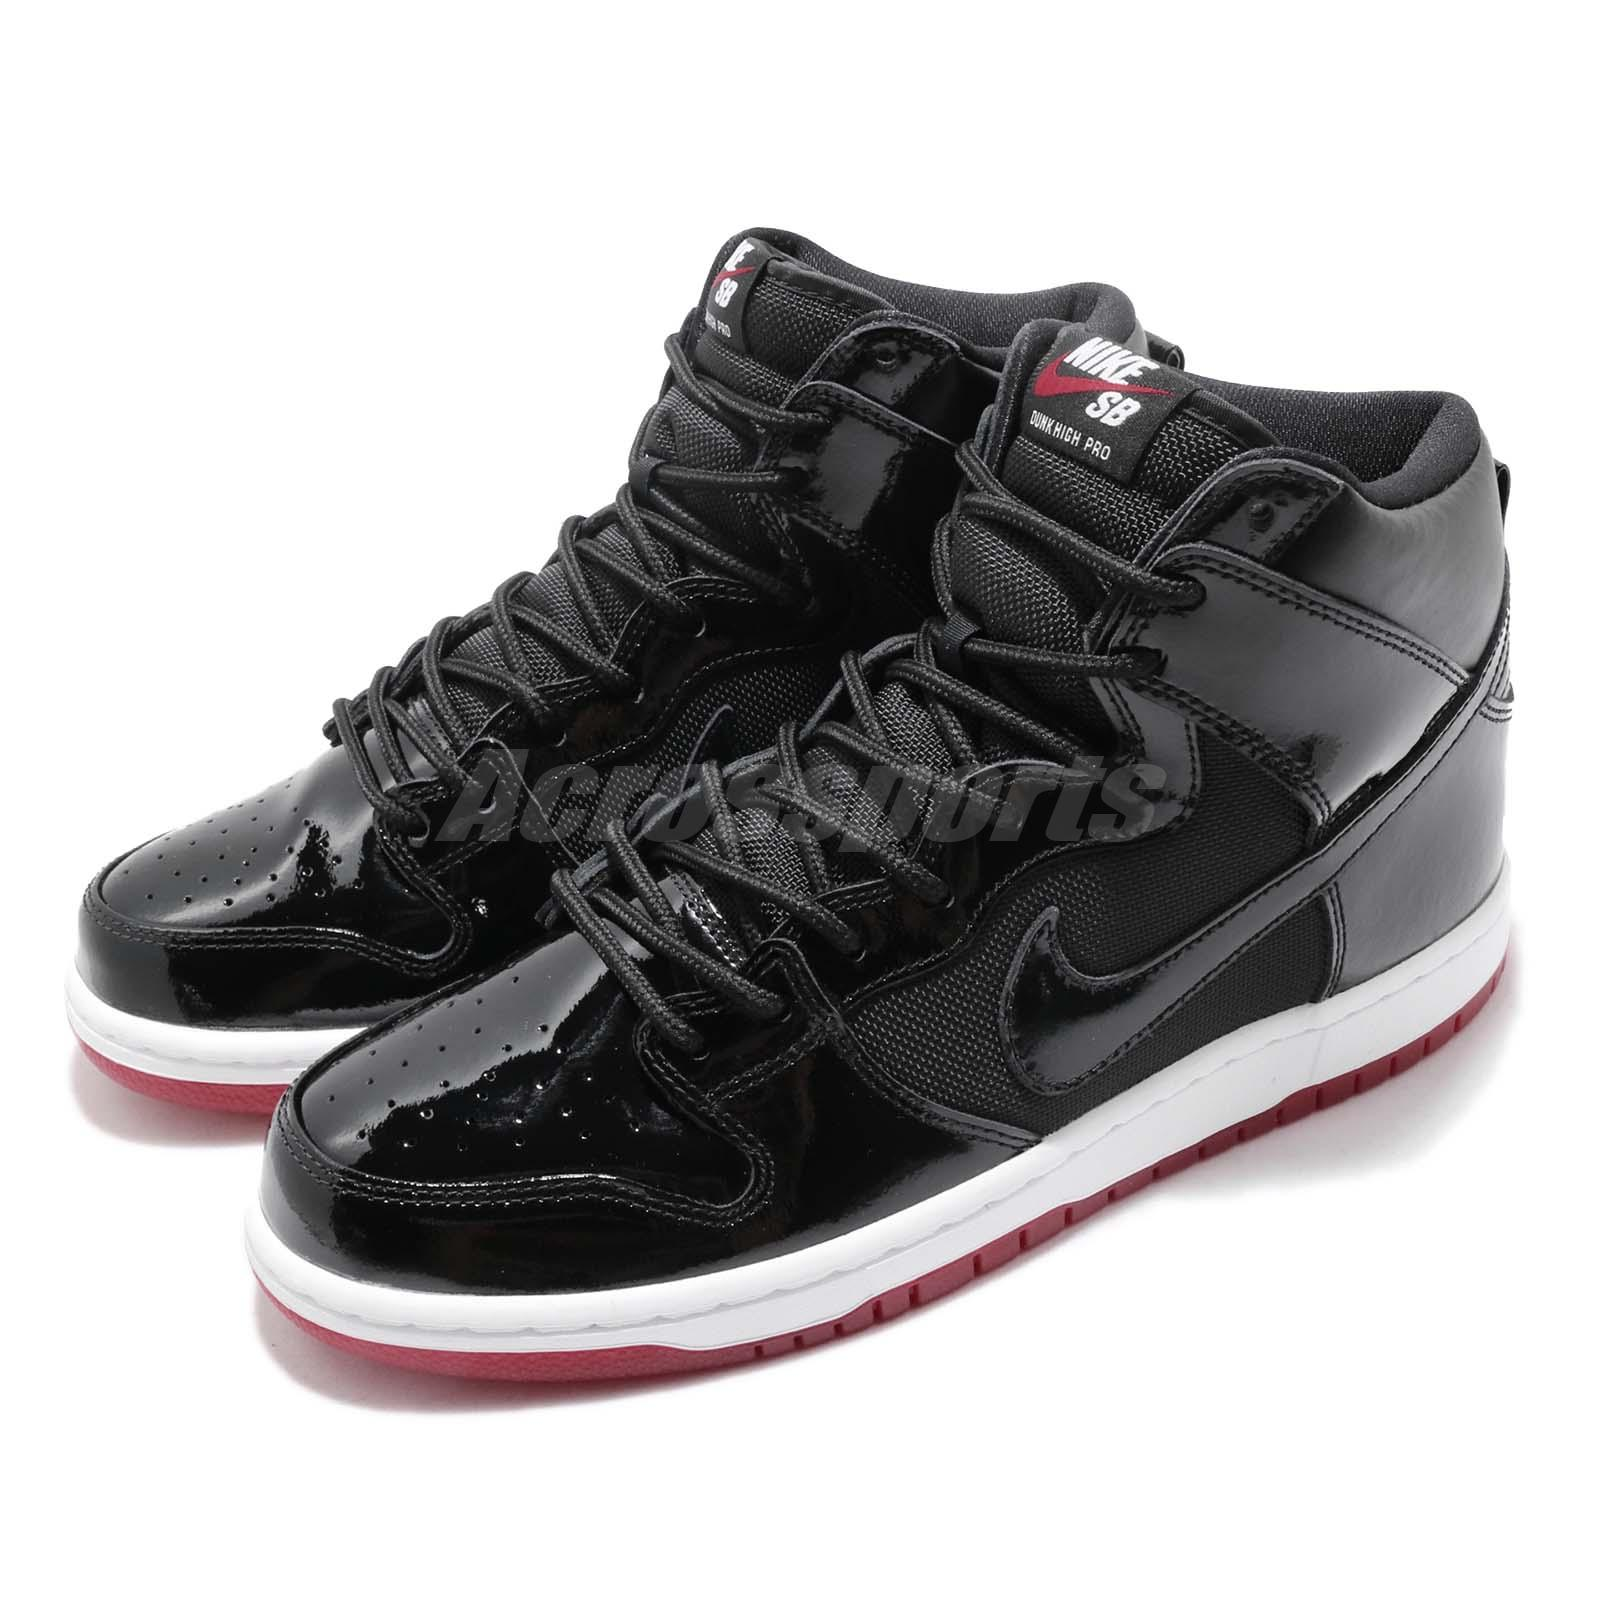 664582e359d9a Details about Nike SB Zoom Dunk High TR QS Rivals Pack BRED Men  Skateboarding Shoes AJ7730-001